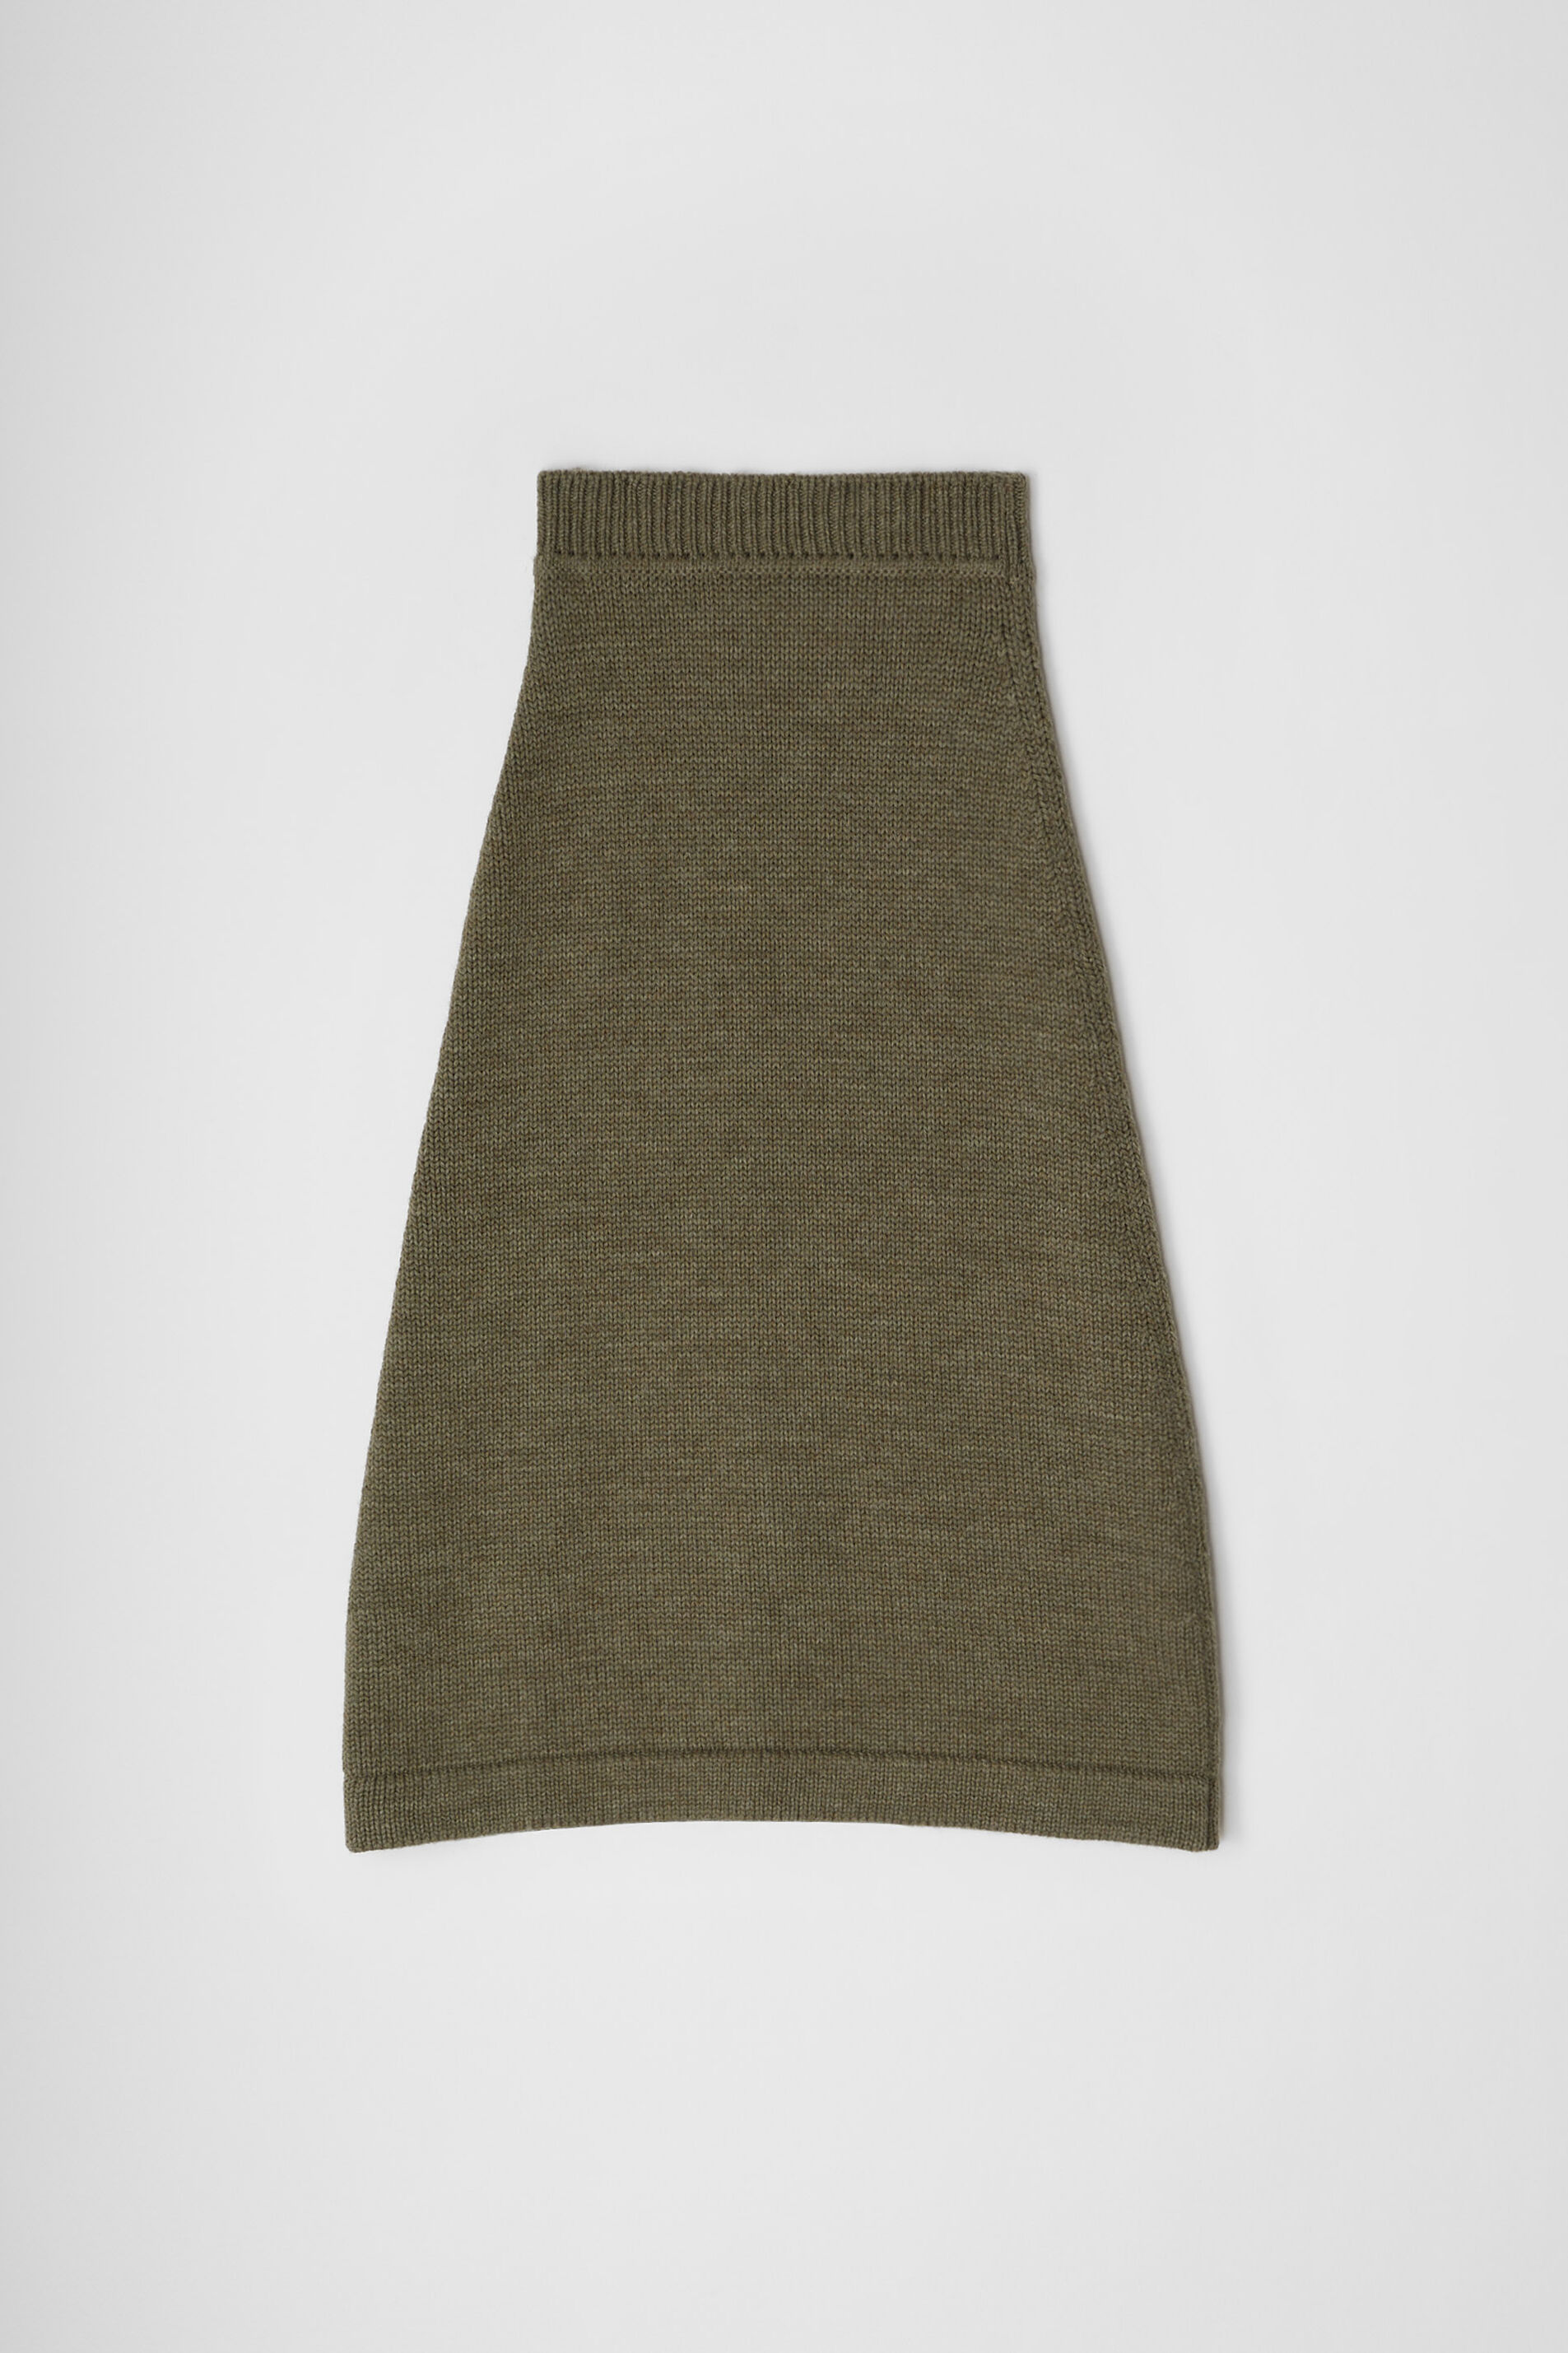 Skirt, green, large